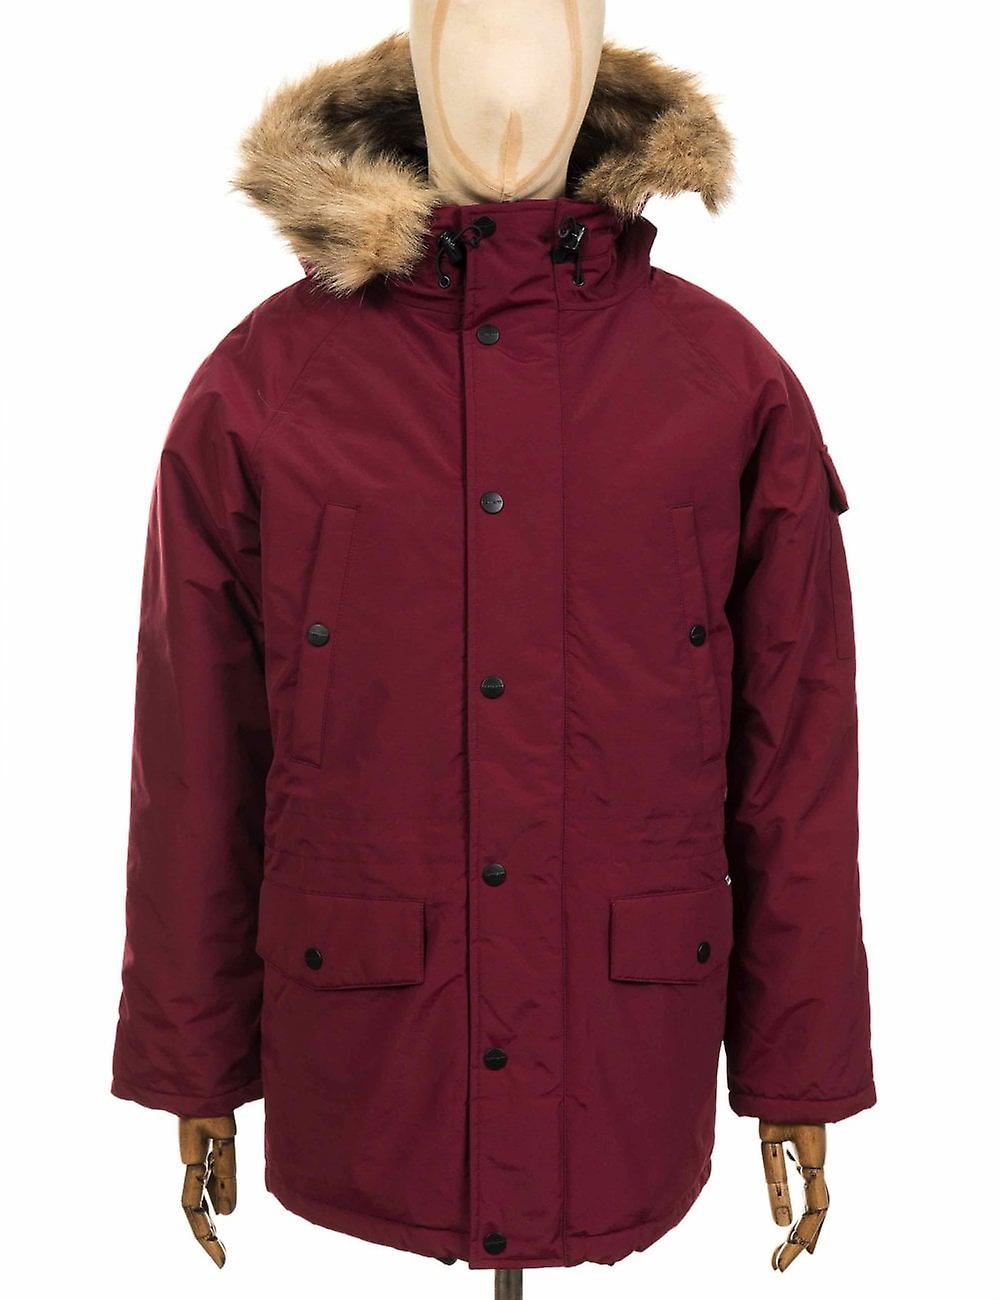 100% top quality low price cheap prices Carhartt WIP Anchorage Parka Jacket - Mulberry